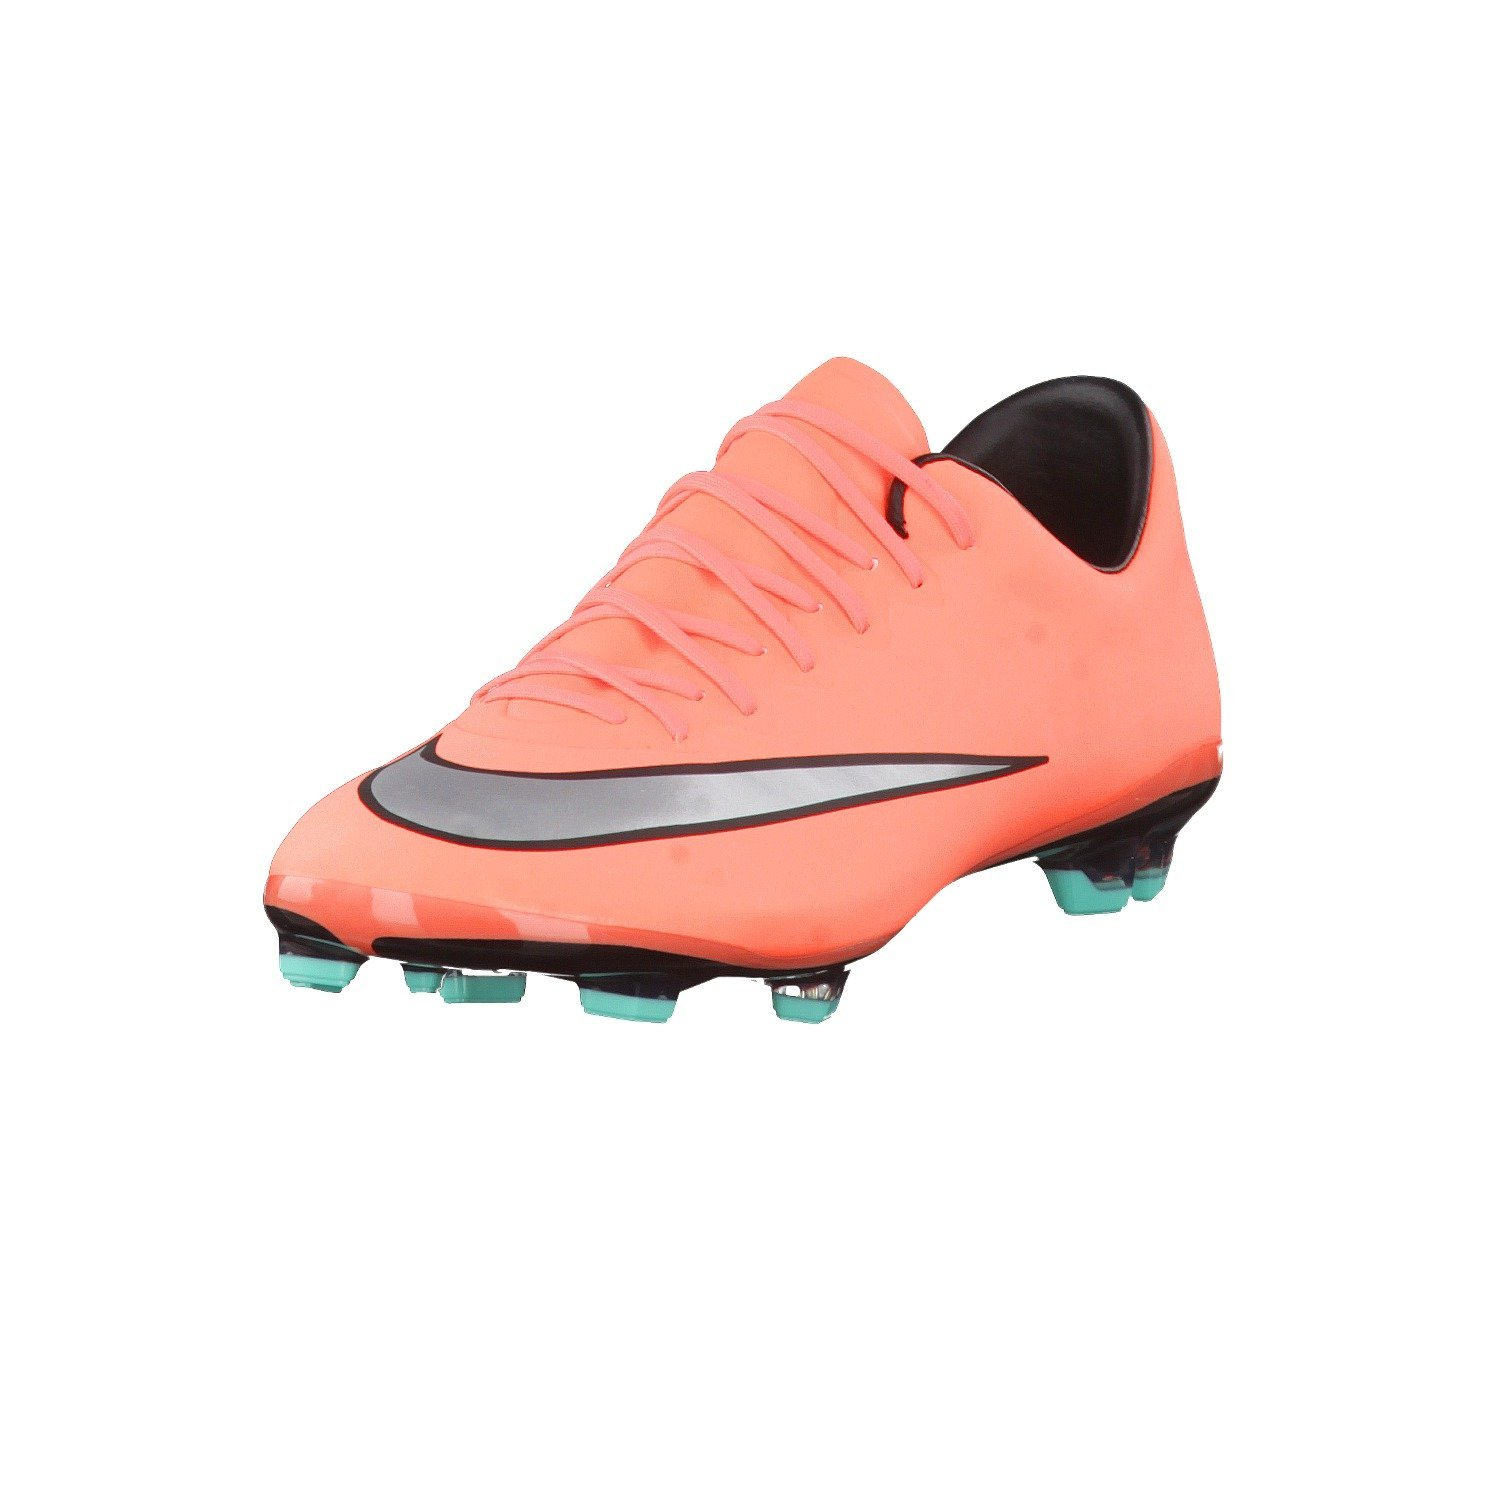 premium selection e4f2e ae8f2 Get Quotations · Nike Youth Mercurial Vapor X Firm Ground